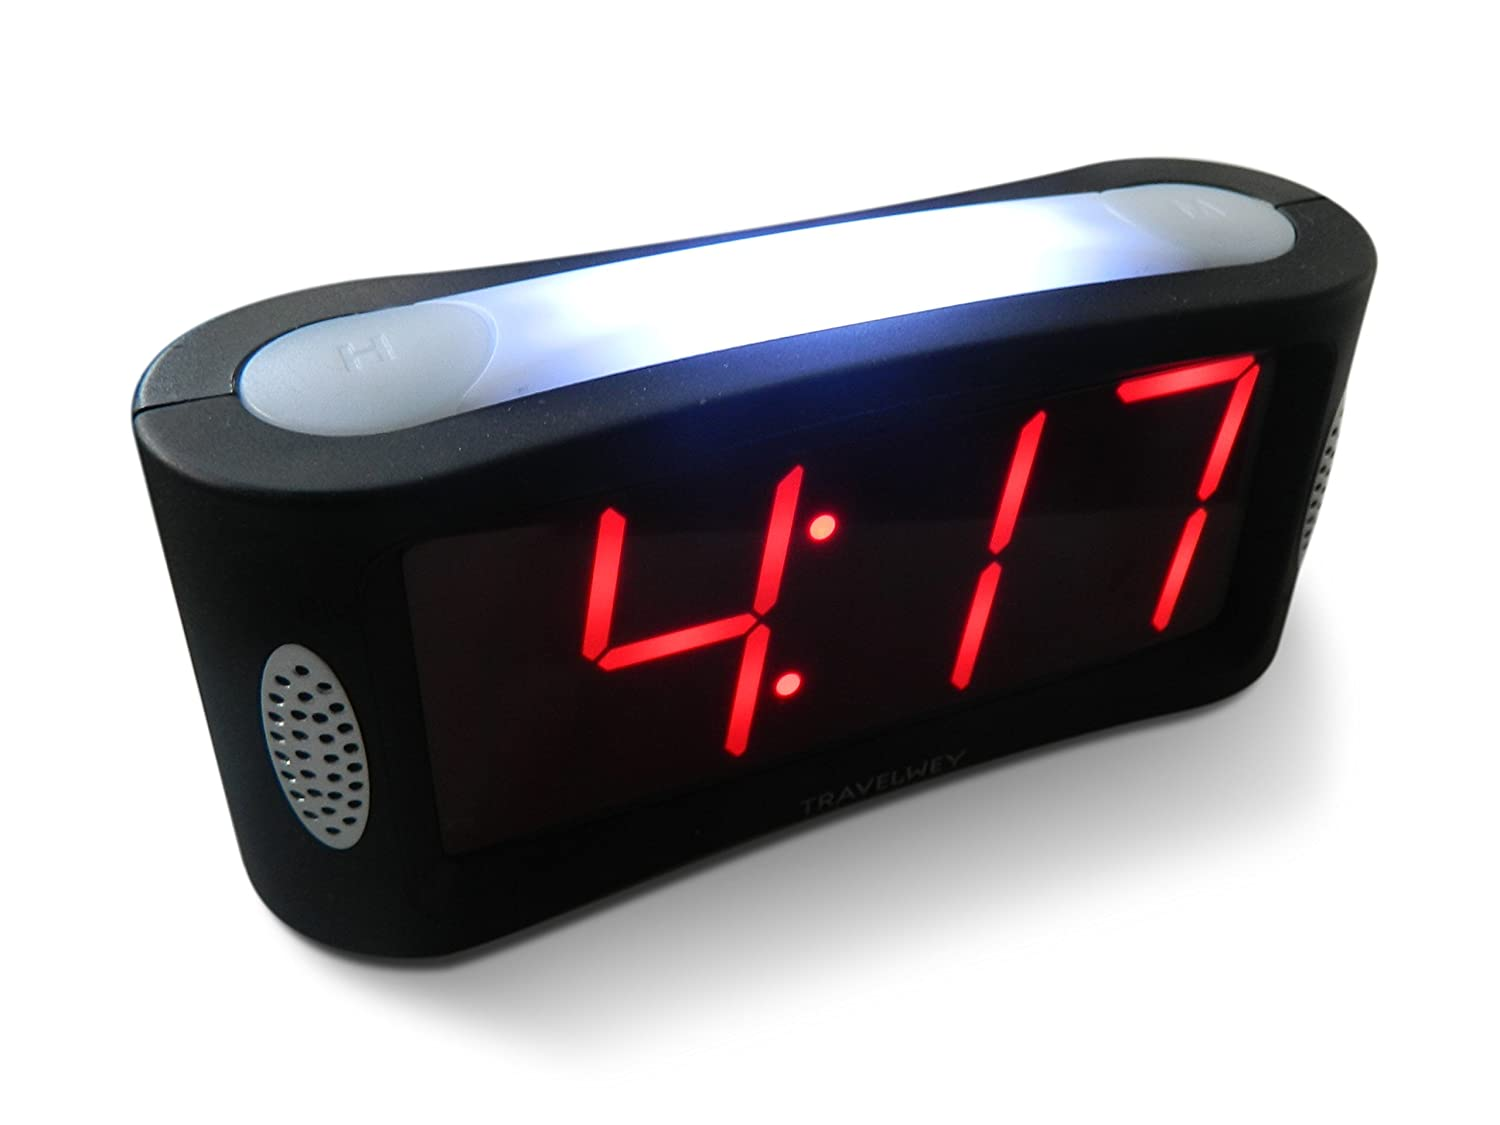 Travelwey Home LED Digital Alarm Clock - Outlet Powered, No Frills Simple Operation, Large Night Light, Alarm, Snooze, Full Range Brightness Dimmer, ...